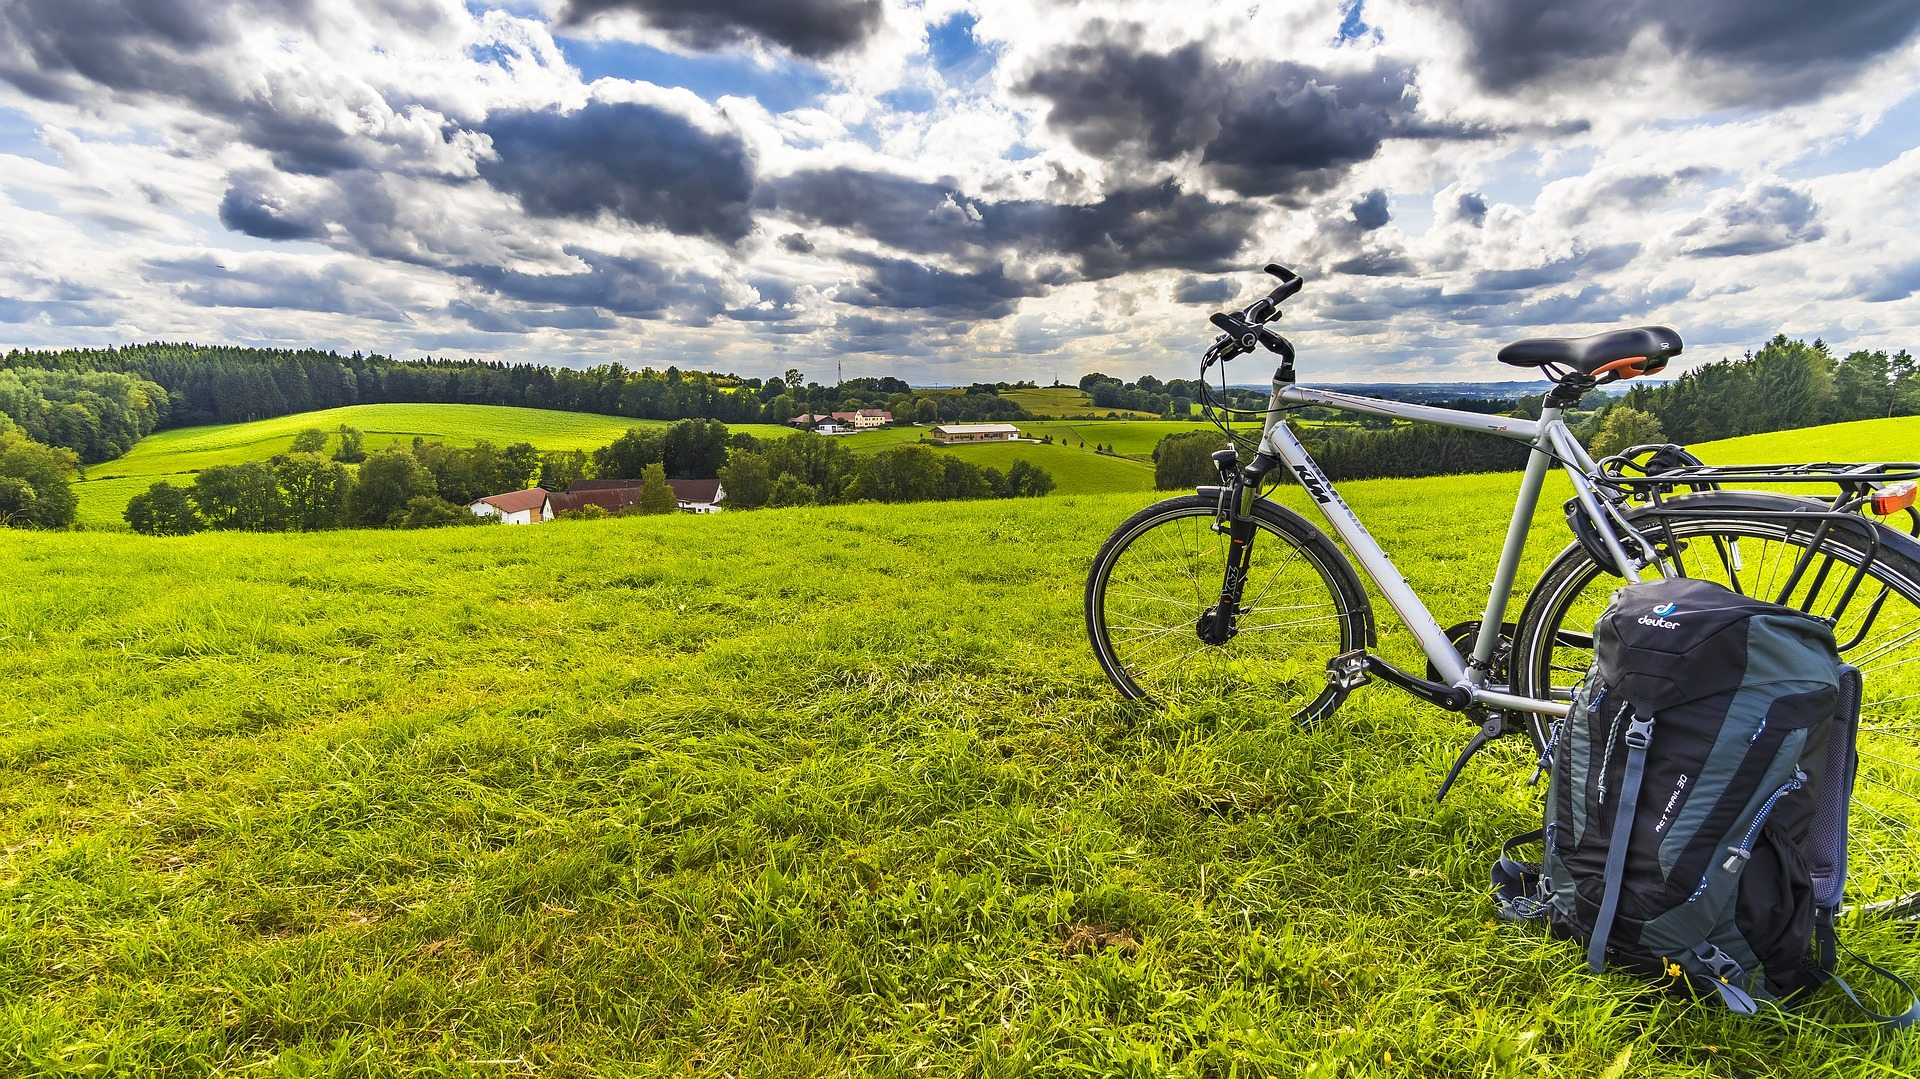 Image: A photo of a bicycle overlooking a glorious field